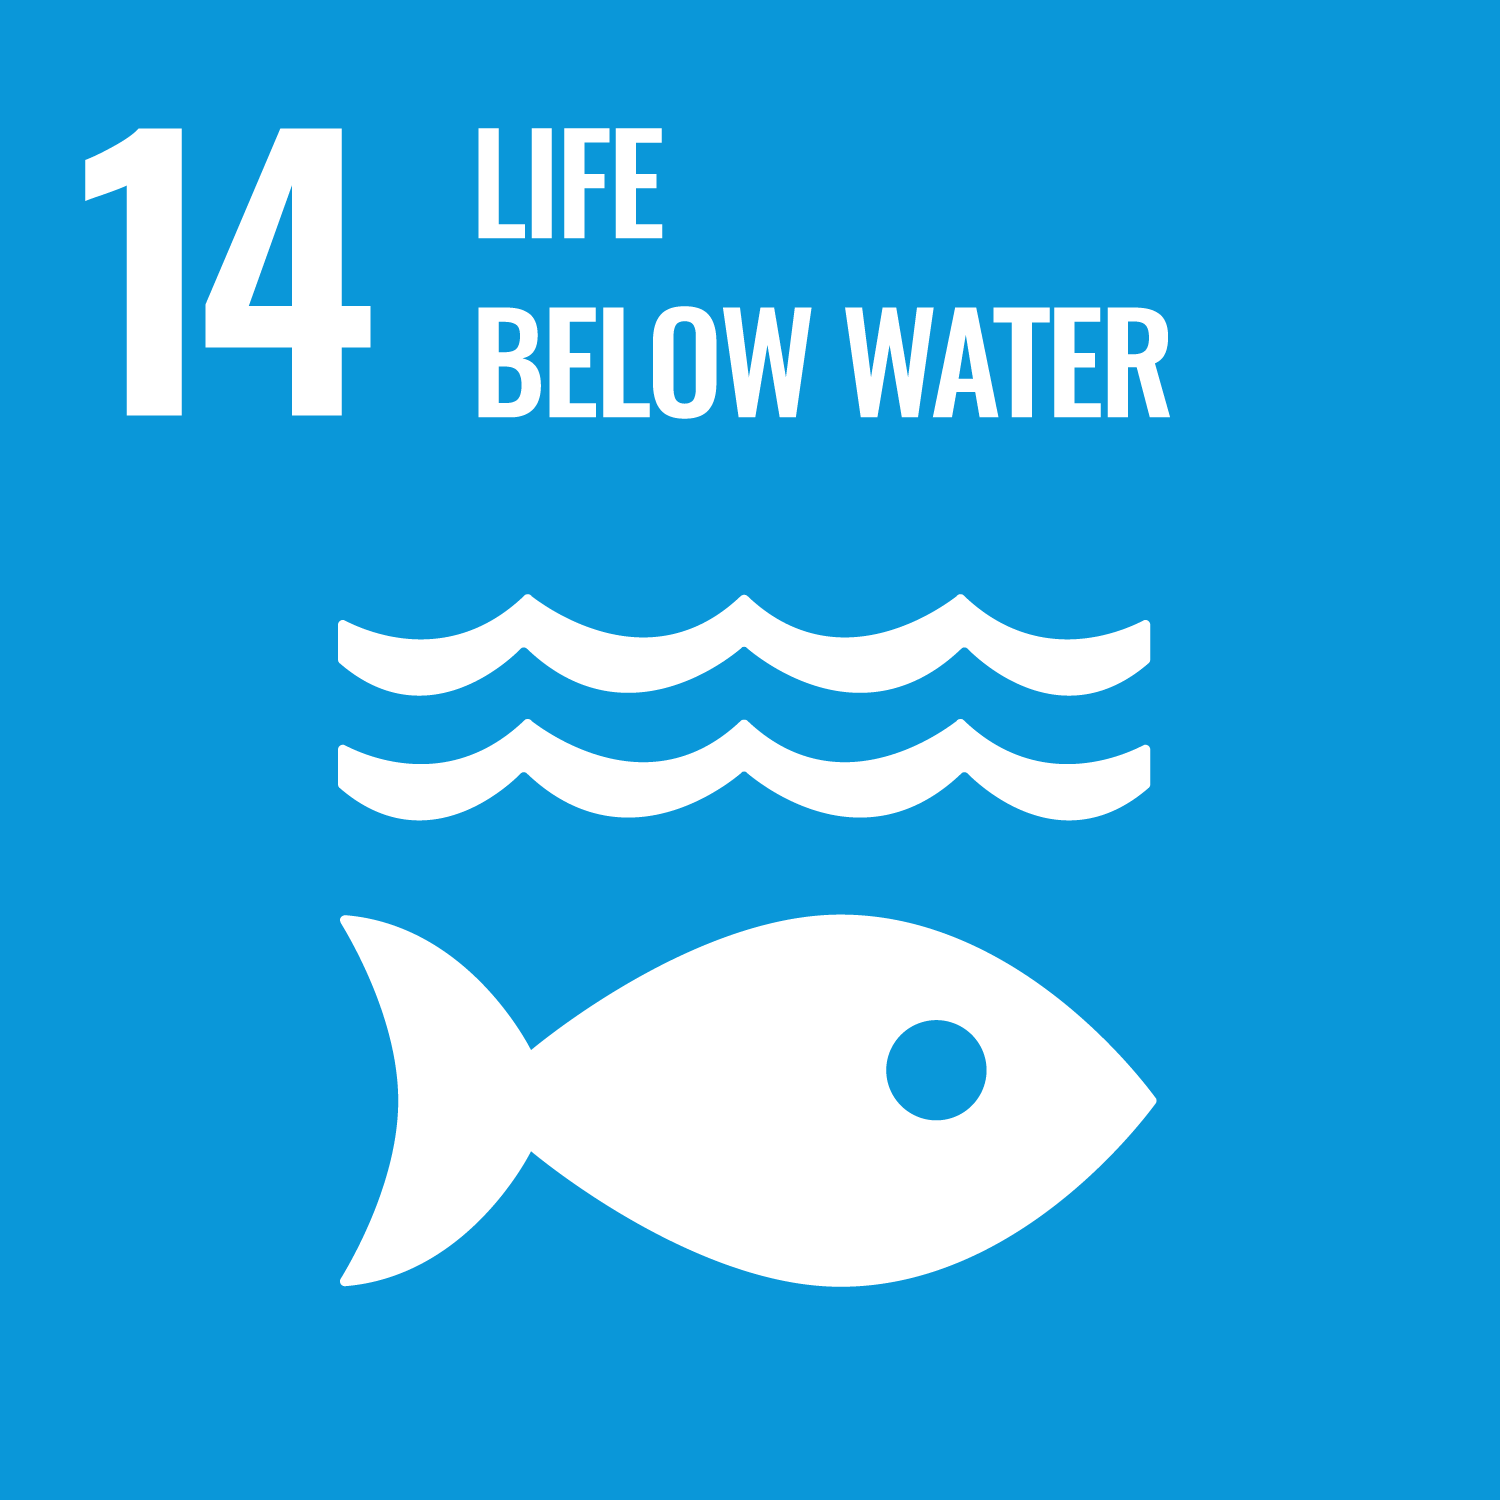 Sustainable Development Goal 14